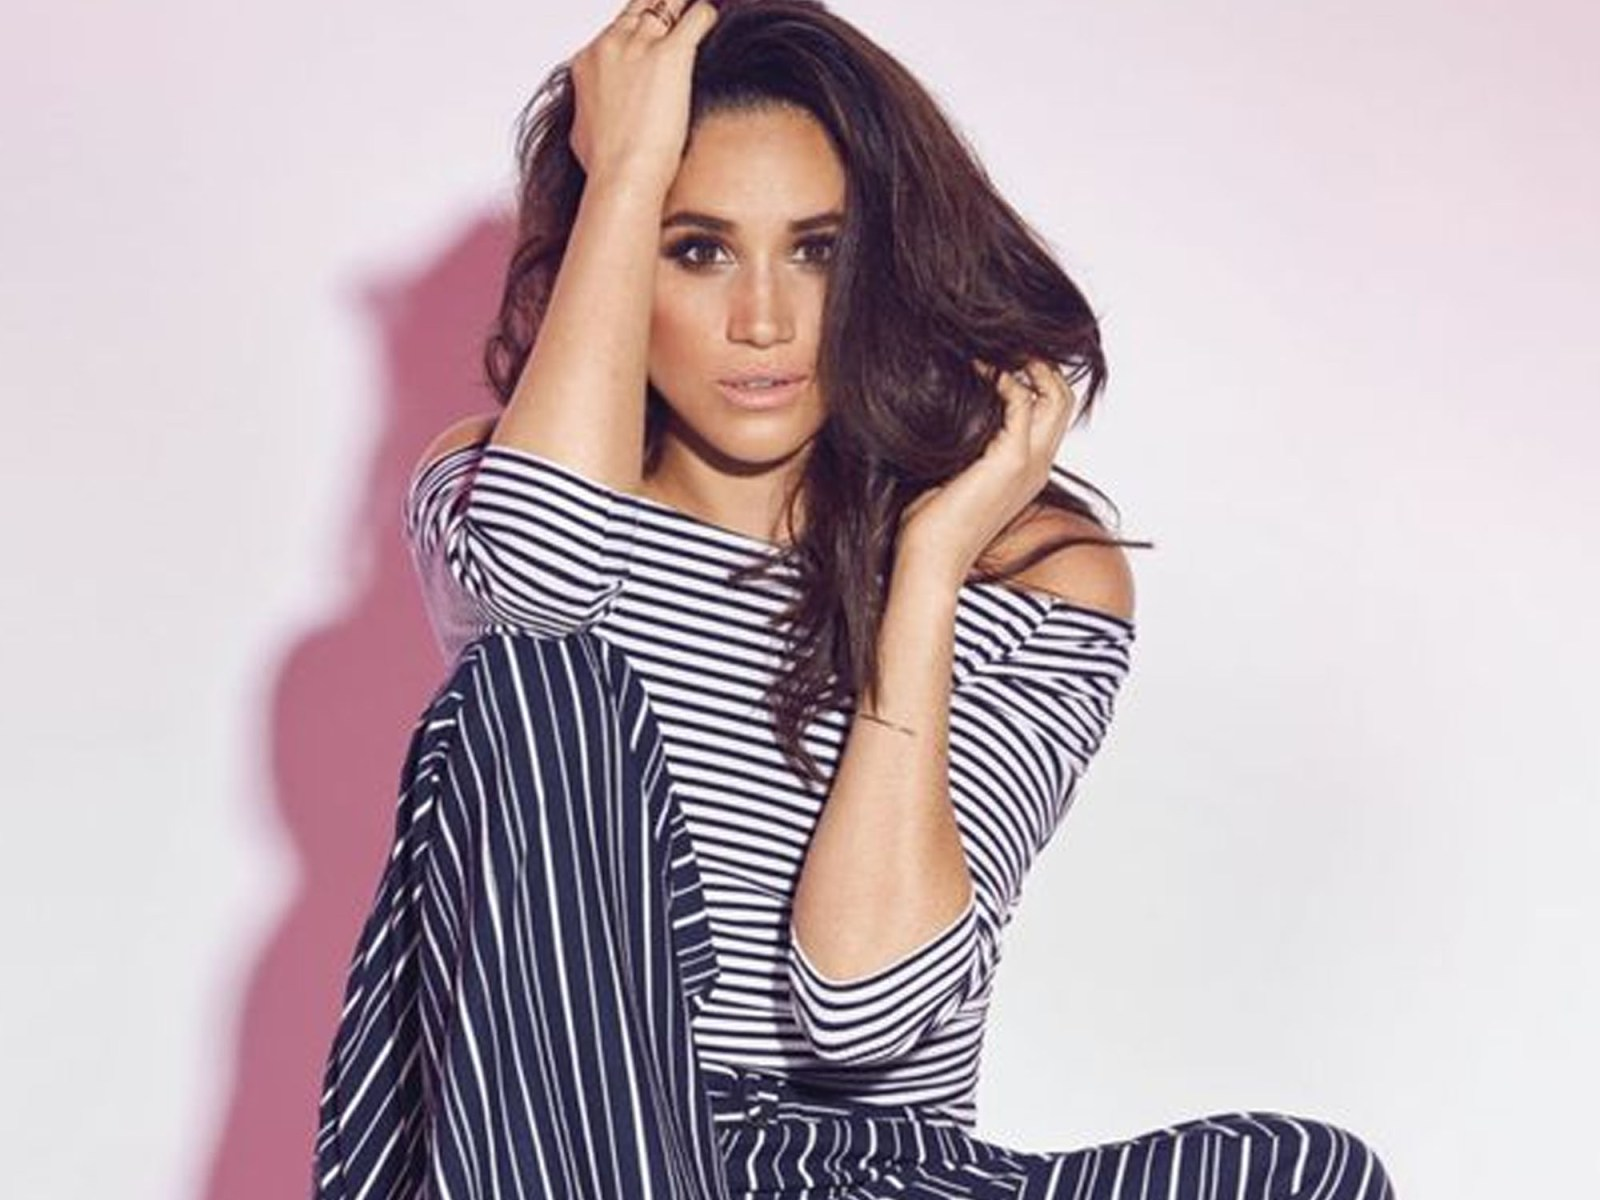 Meghan Markle fashion looks are always stunning. Here are some of our favourite fashion looks of hers that are so elegant and timeless!